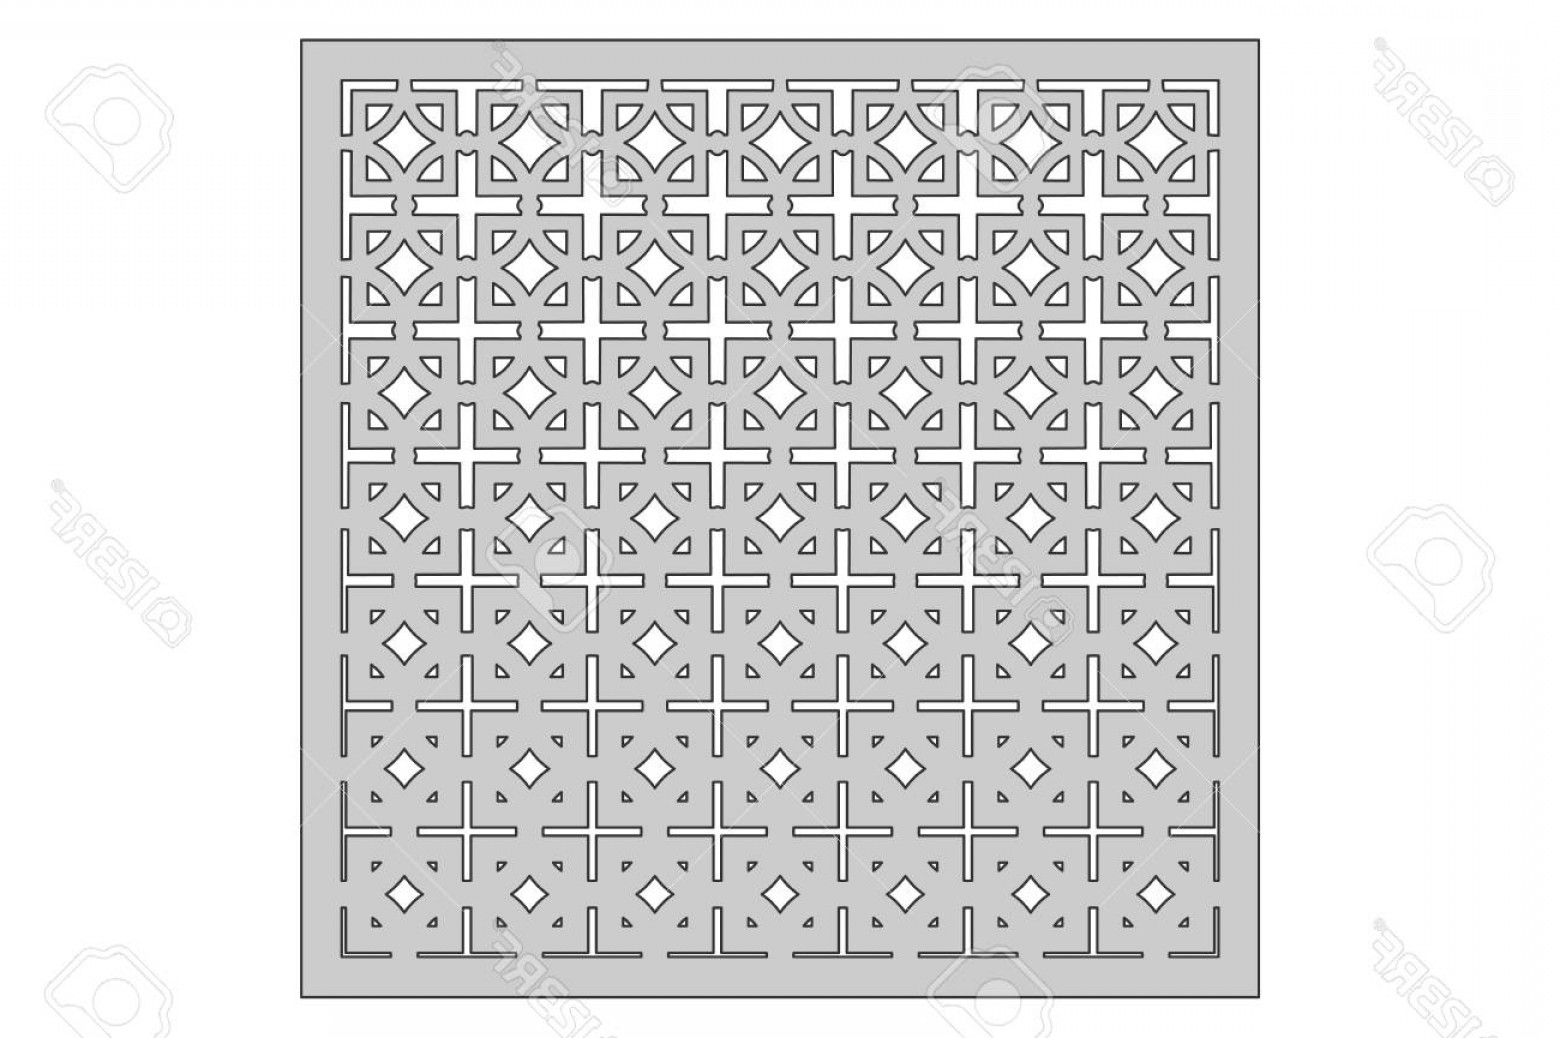 1-1 Vector: Photostock Vector Template For Cutting Square Repeat Pattern Laser Cut Ratio Vector Illustration